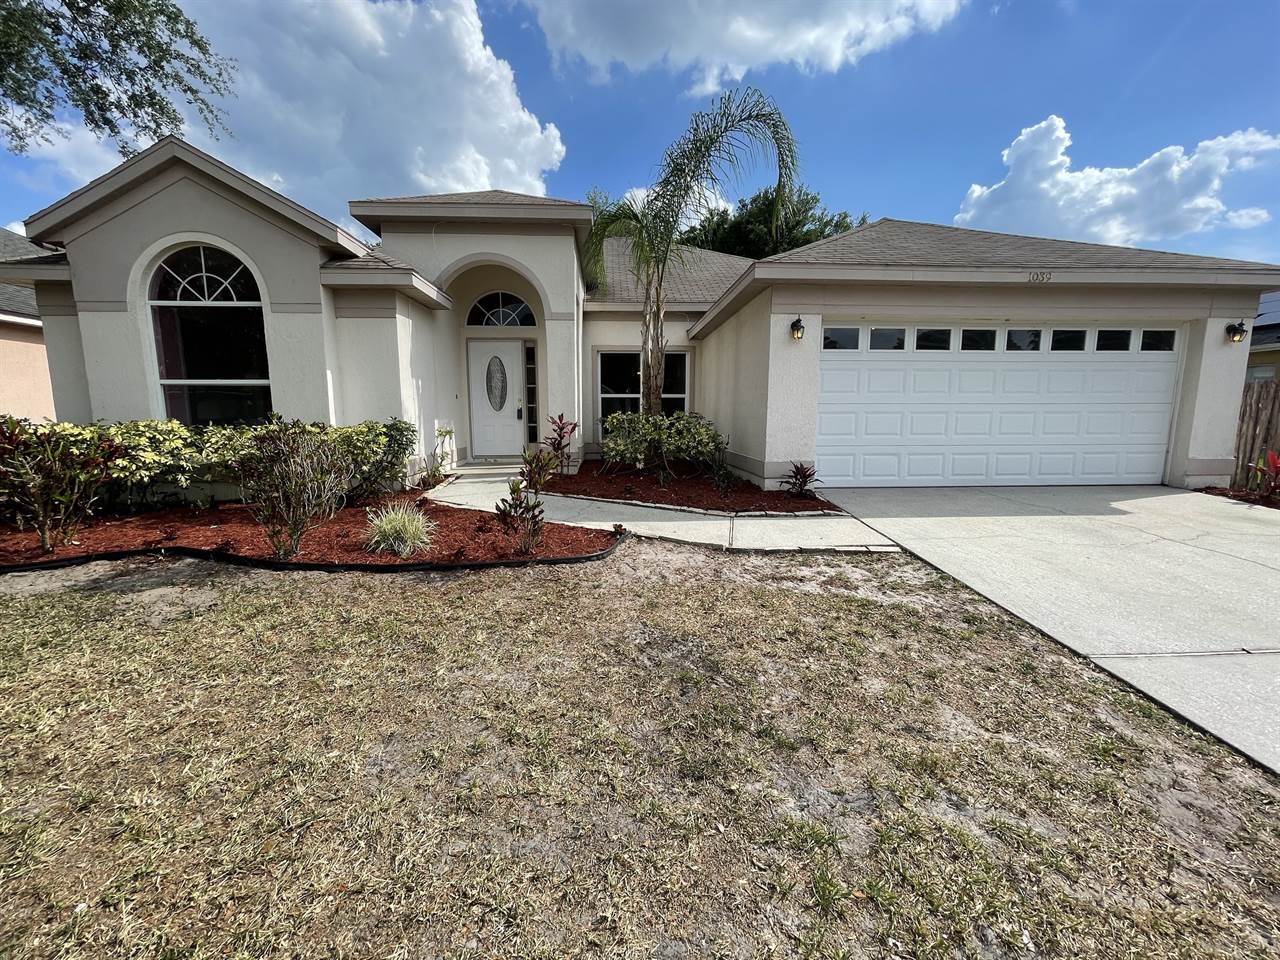 1039 Sweetbrook Way, ORLANDO, Florida 32828, 4 Bedrooms Bedrooms, ,2 BathroomsBathrooms,Single Family,For Sale,1039 Sweetbrook Way,U8118942